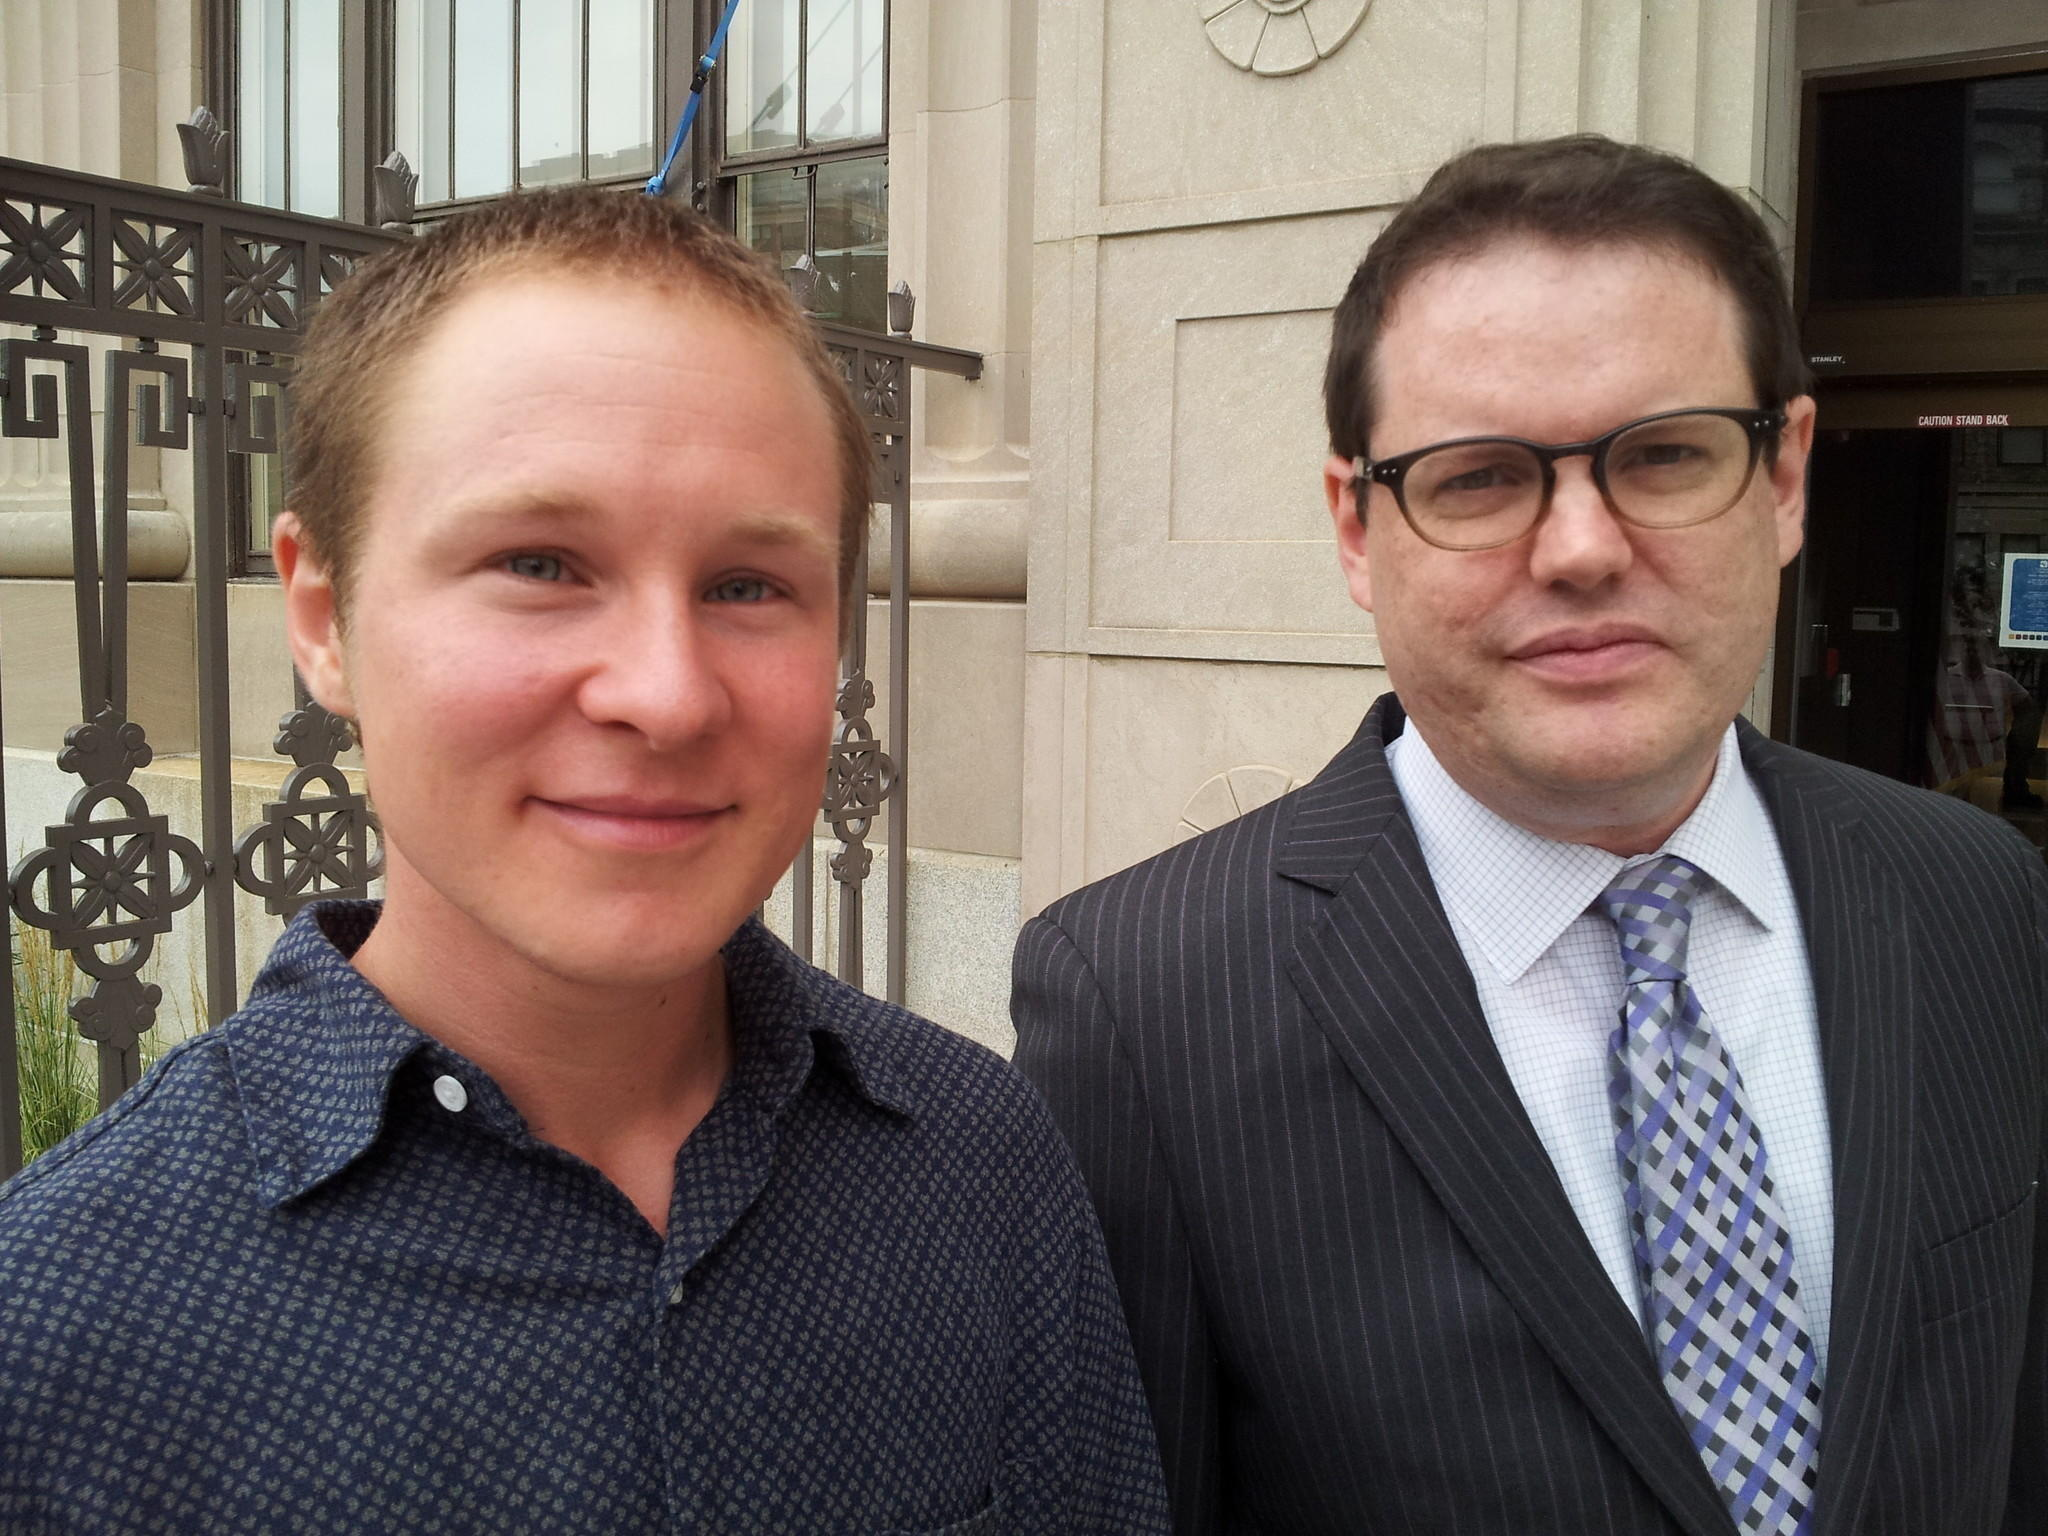 After Sailor Holobaugh, left, and his attorney Jer Welter, right, with Free State Legal, filed a discrimination claim against the state for denying health insurance coverage of Holobaugh's transition-related care, the state reversed its policy -- and now provides such care for all state employees and their dependents.